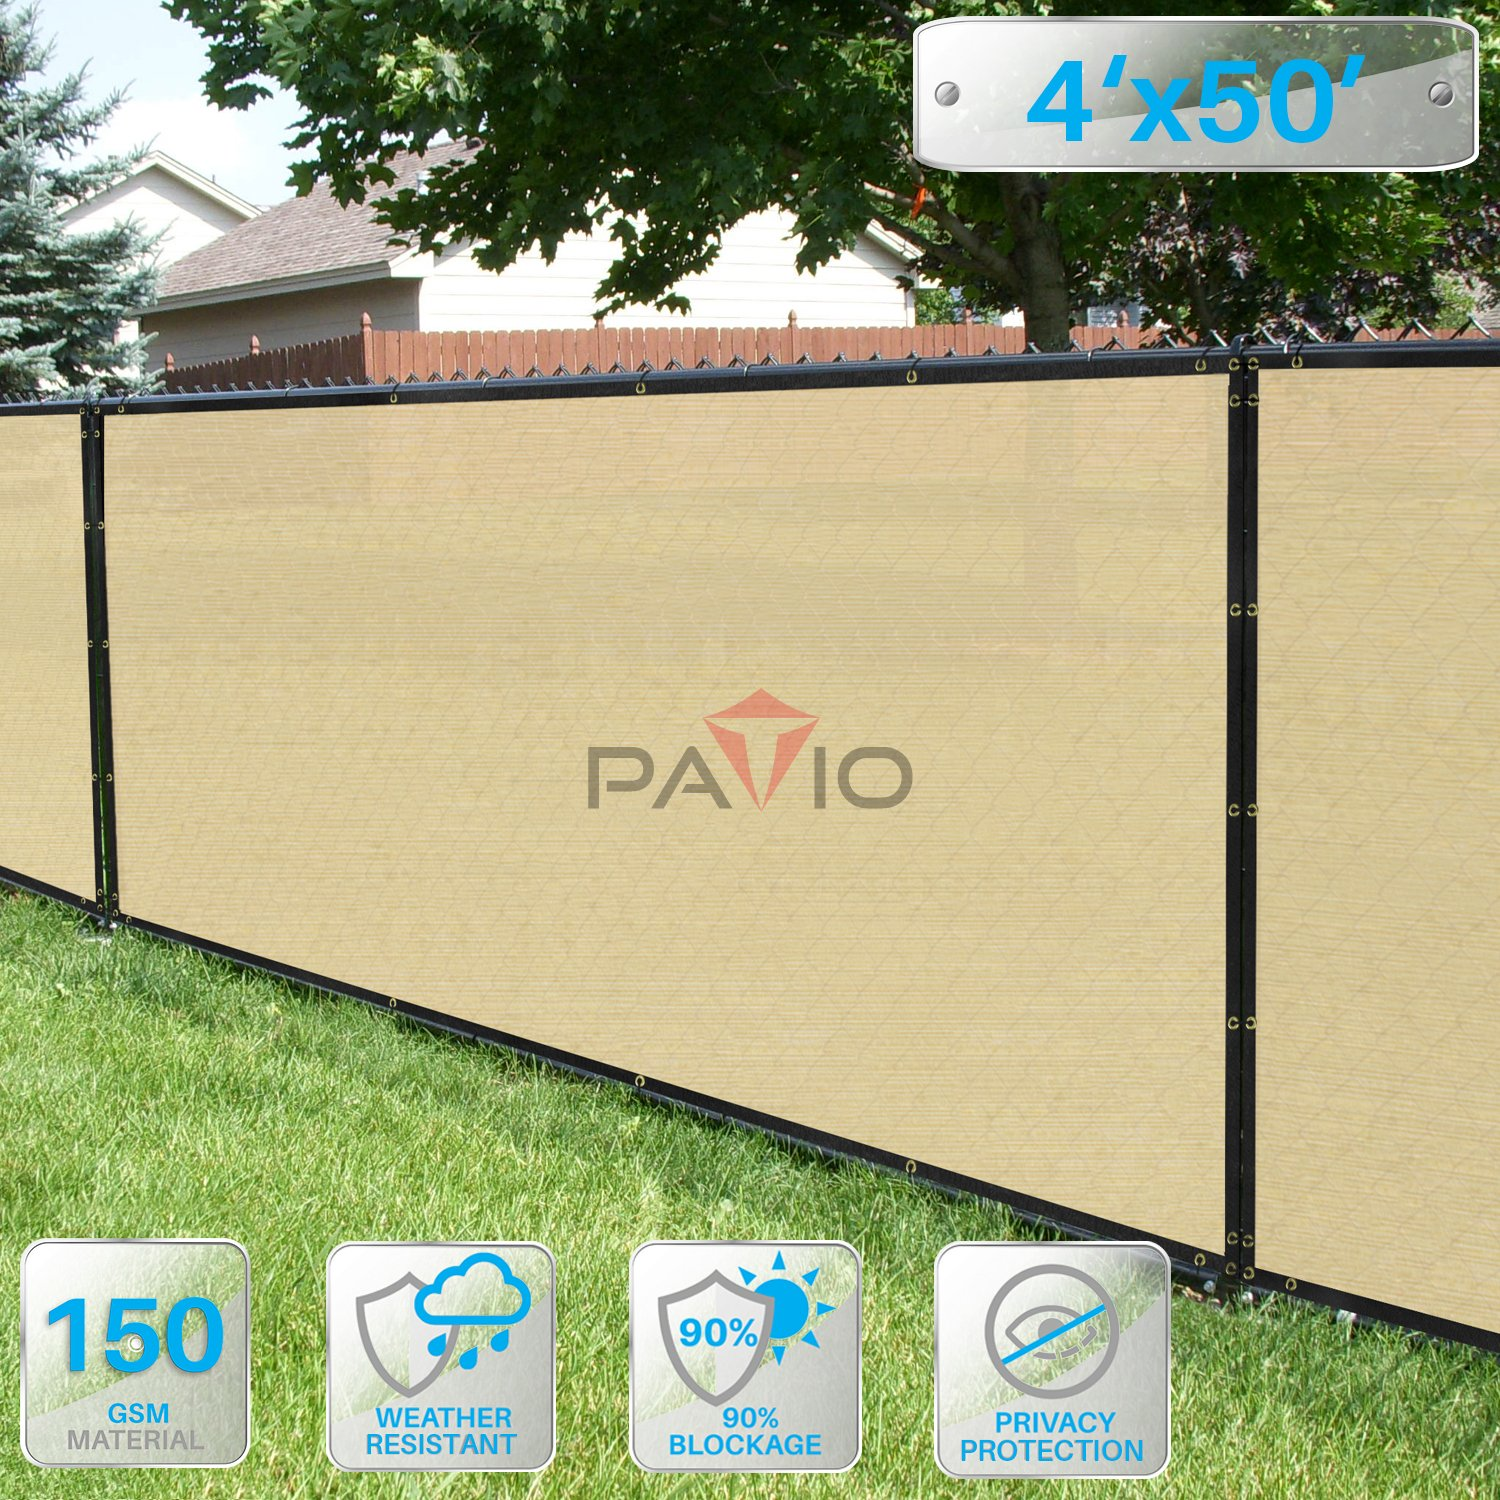 Patio Paradise 4' x 50' Tan Beige Fence Privacy Screen, Commercial Outdoor Backyard Shade Windscreen Mesh Fabric with Brass Gromment 85% Blockage- 3 Years Warranty (Customized by Patio Paradise